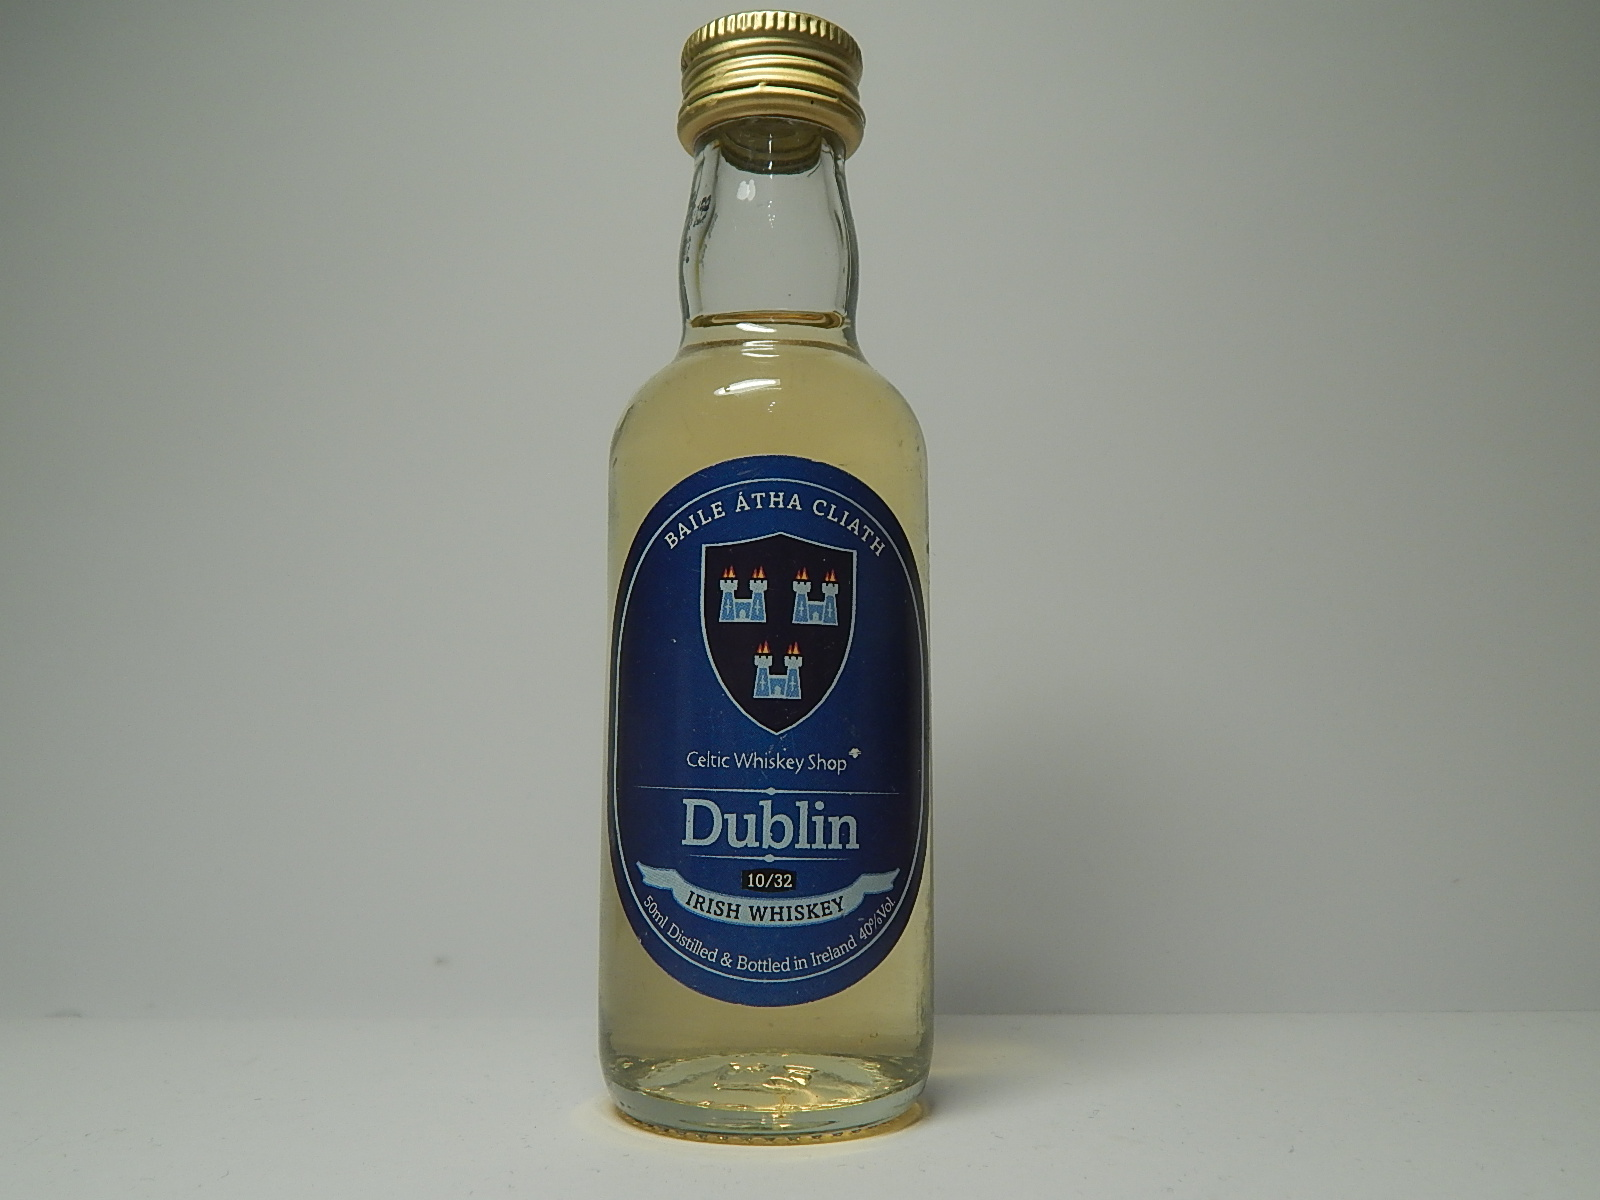 DUBLIN Irish Whiskey